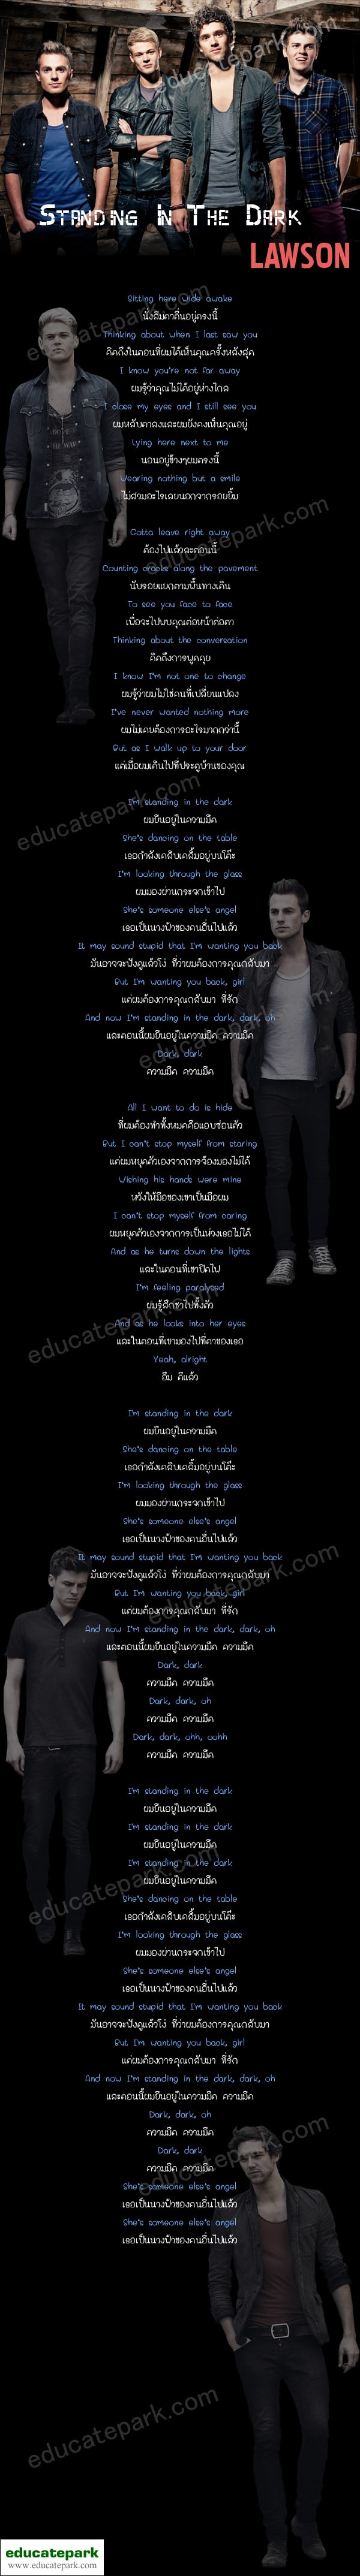 แปลเพลง Standing In The Dark - Lawson